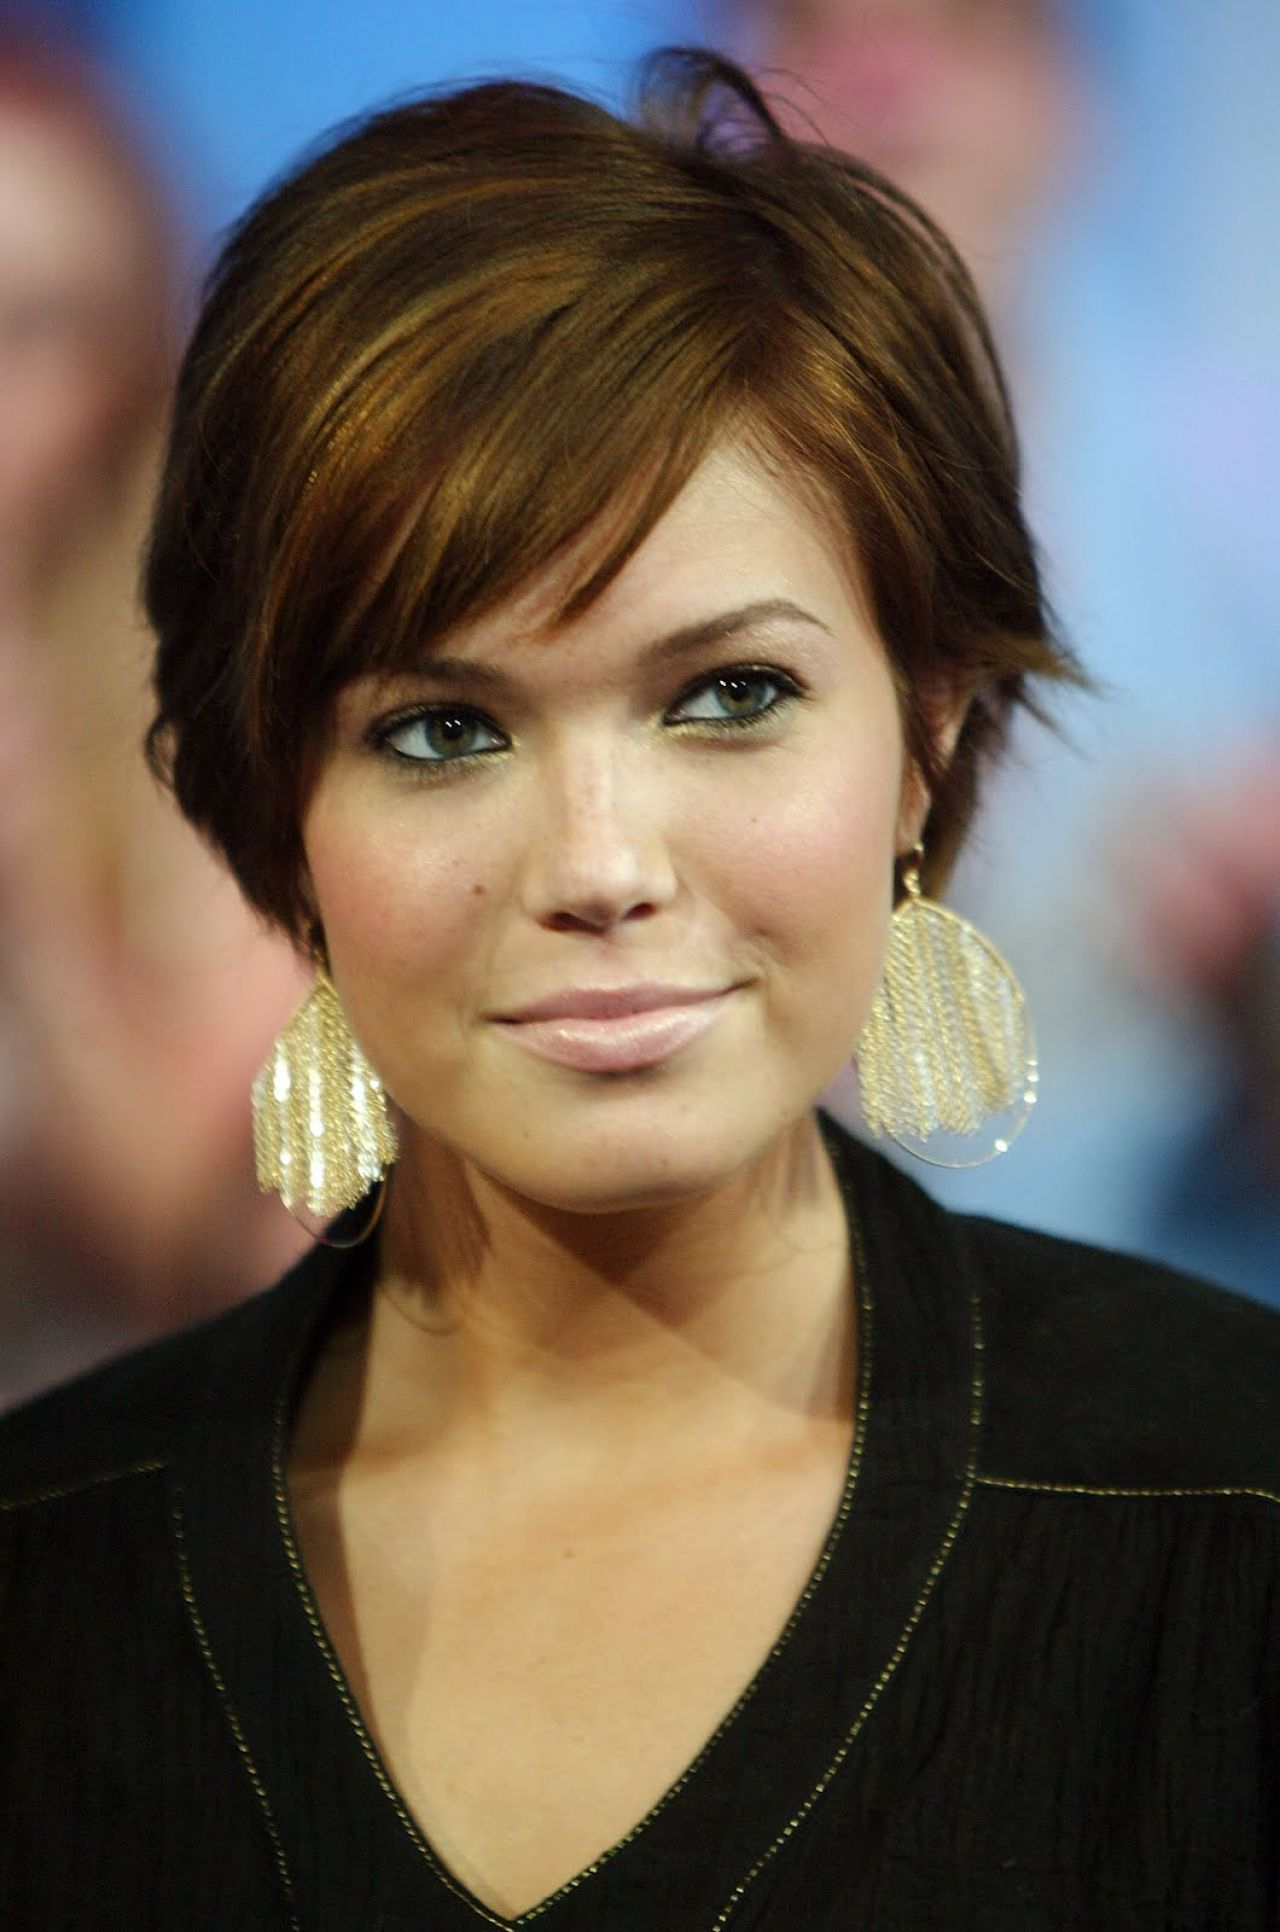 Short Hairstyles For Square Faces Female – Google Search With Short Hairstyles For Petite Faces (View 7 of 25)